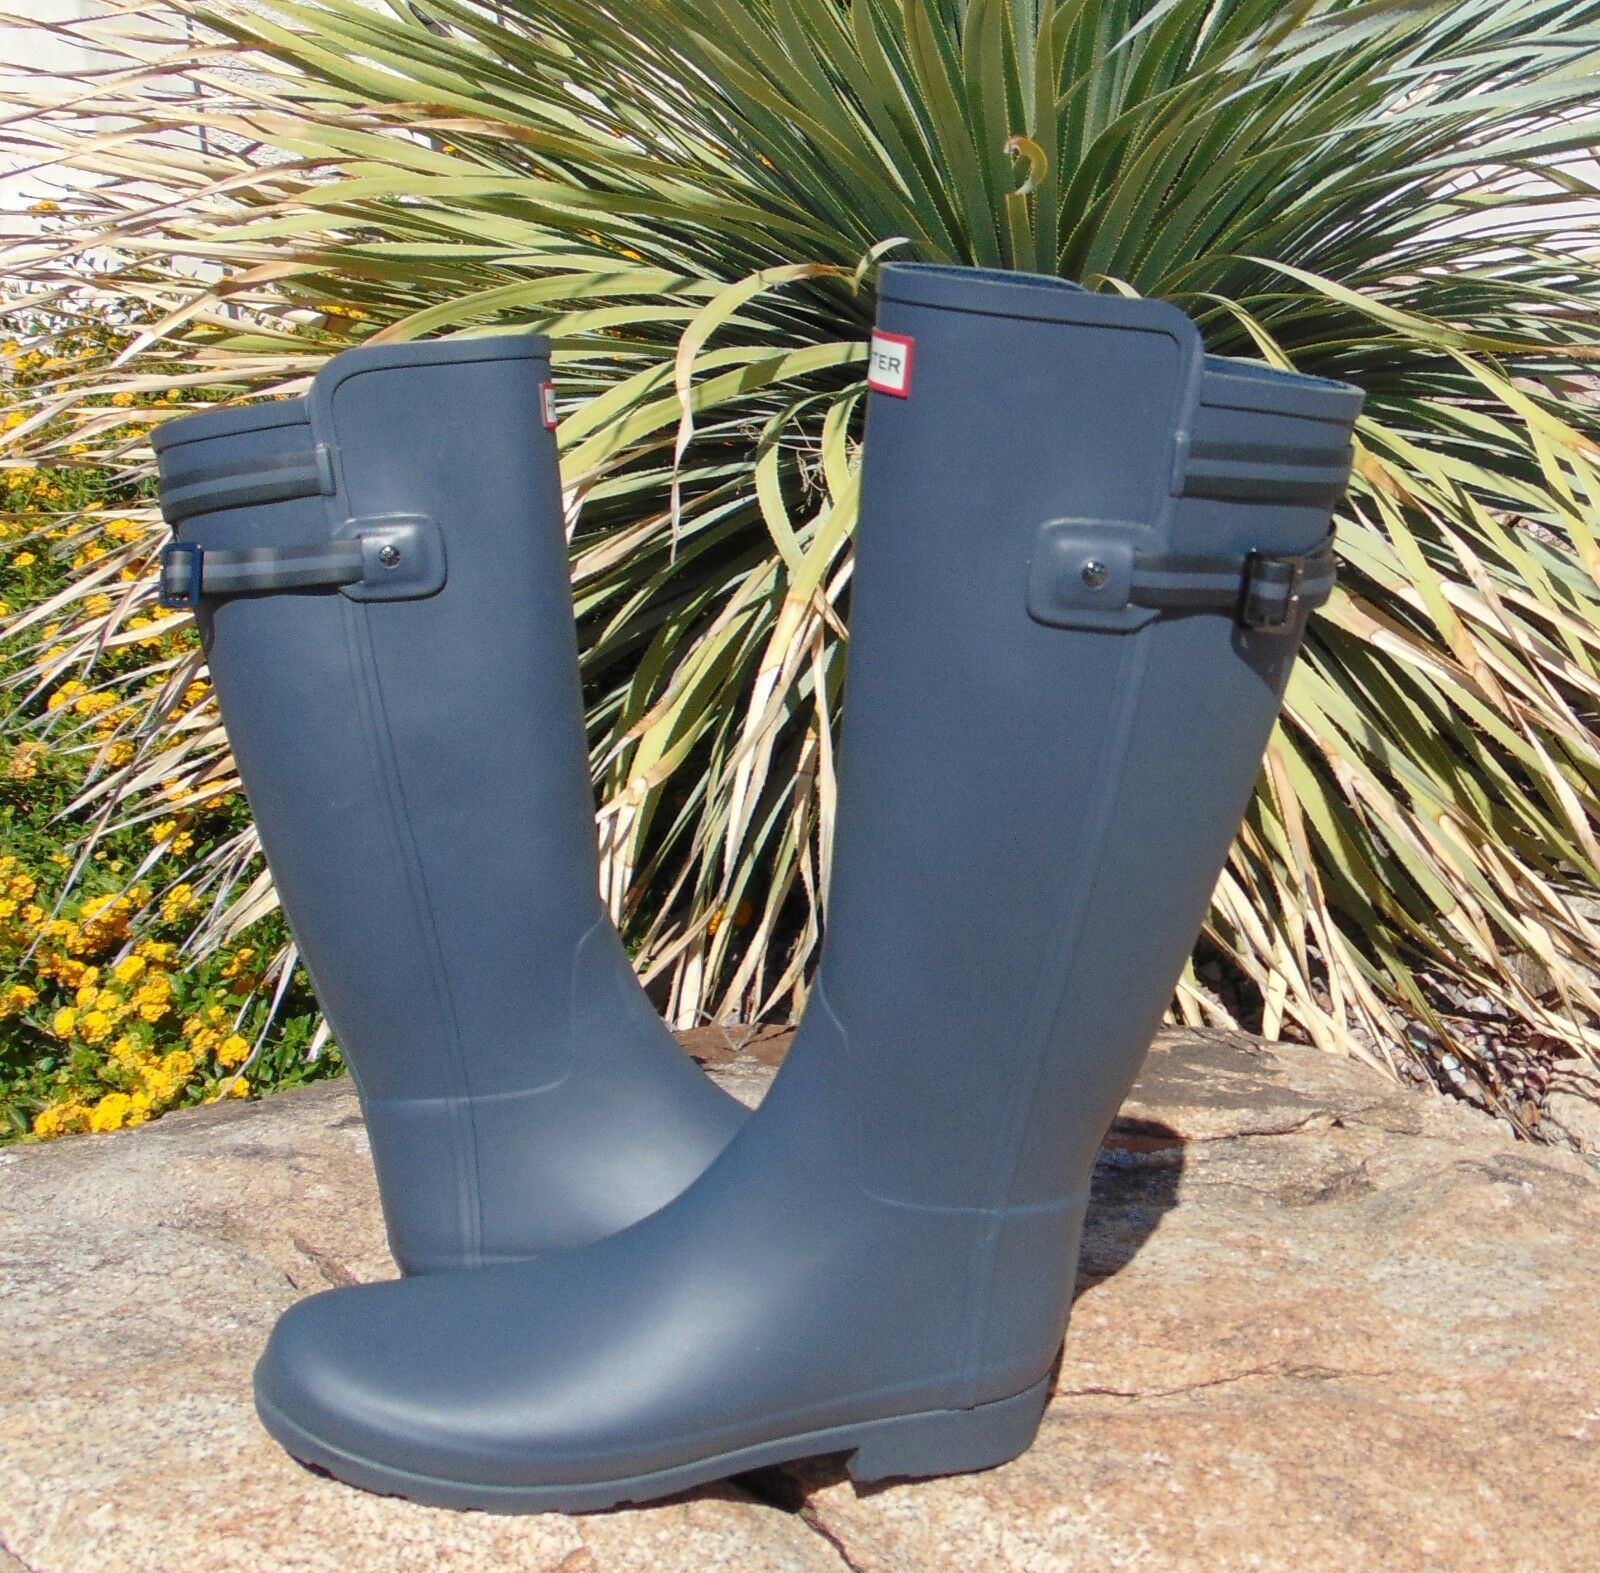 New HUNTER Original Refined Backstrap Backstrap Backstrap Stripe Rain Boots 43/11 Donna d3ac65